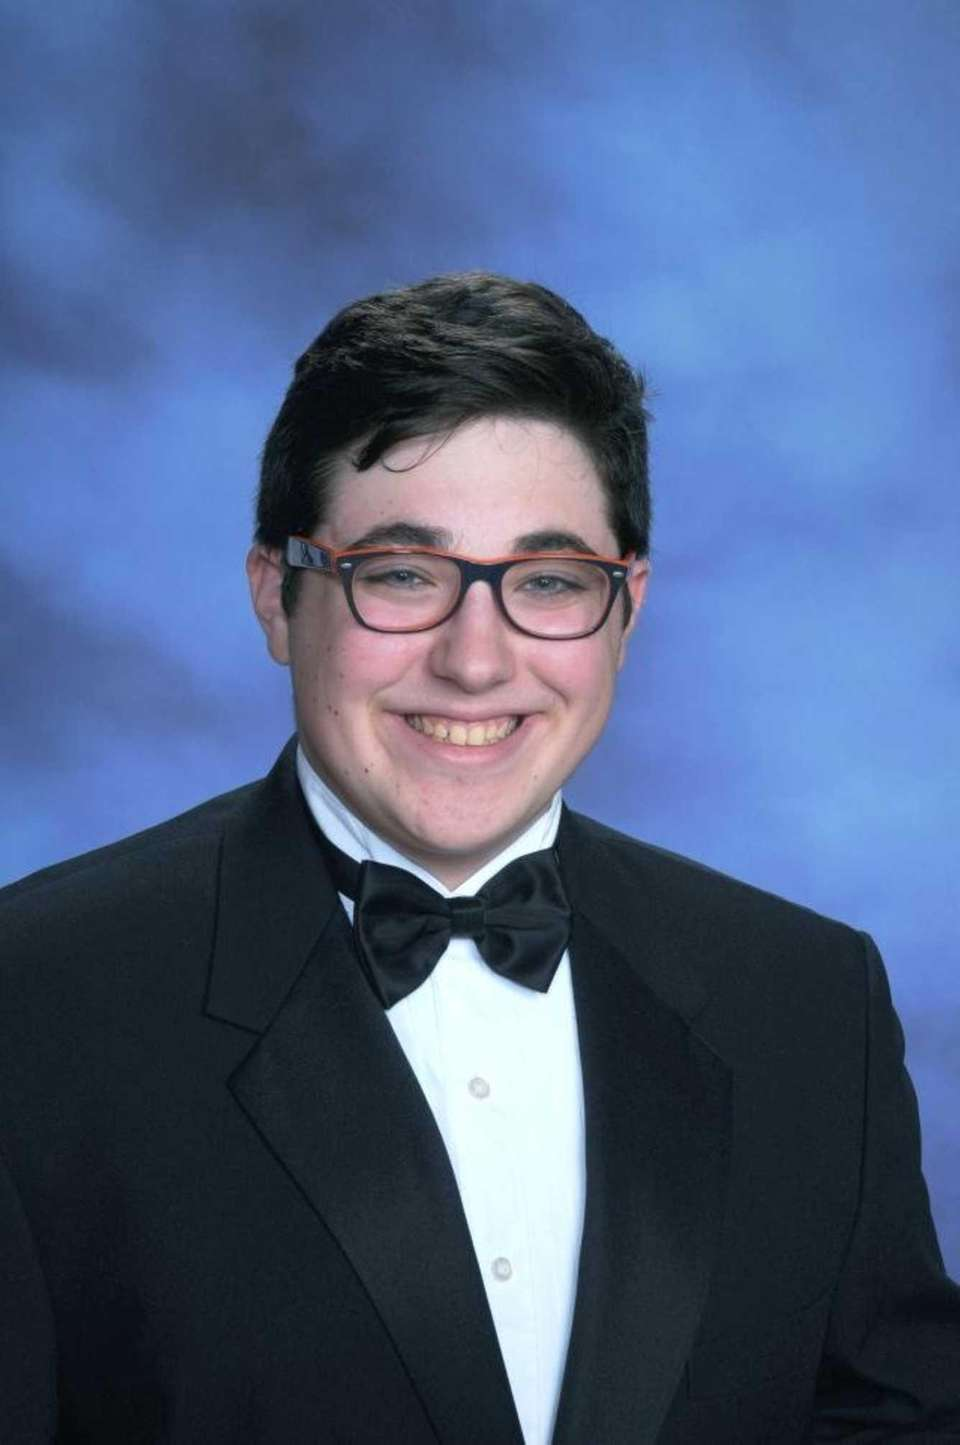 GABRIEL BERKOWITZ, WEST HEMPSTEAD HIGH SCHOOL Hometown: West